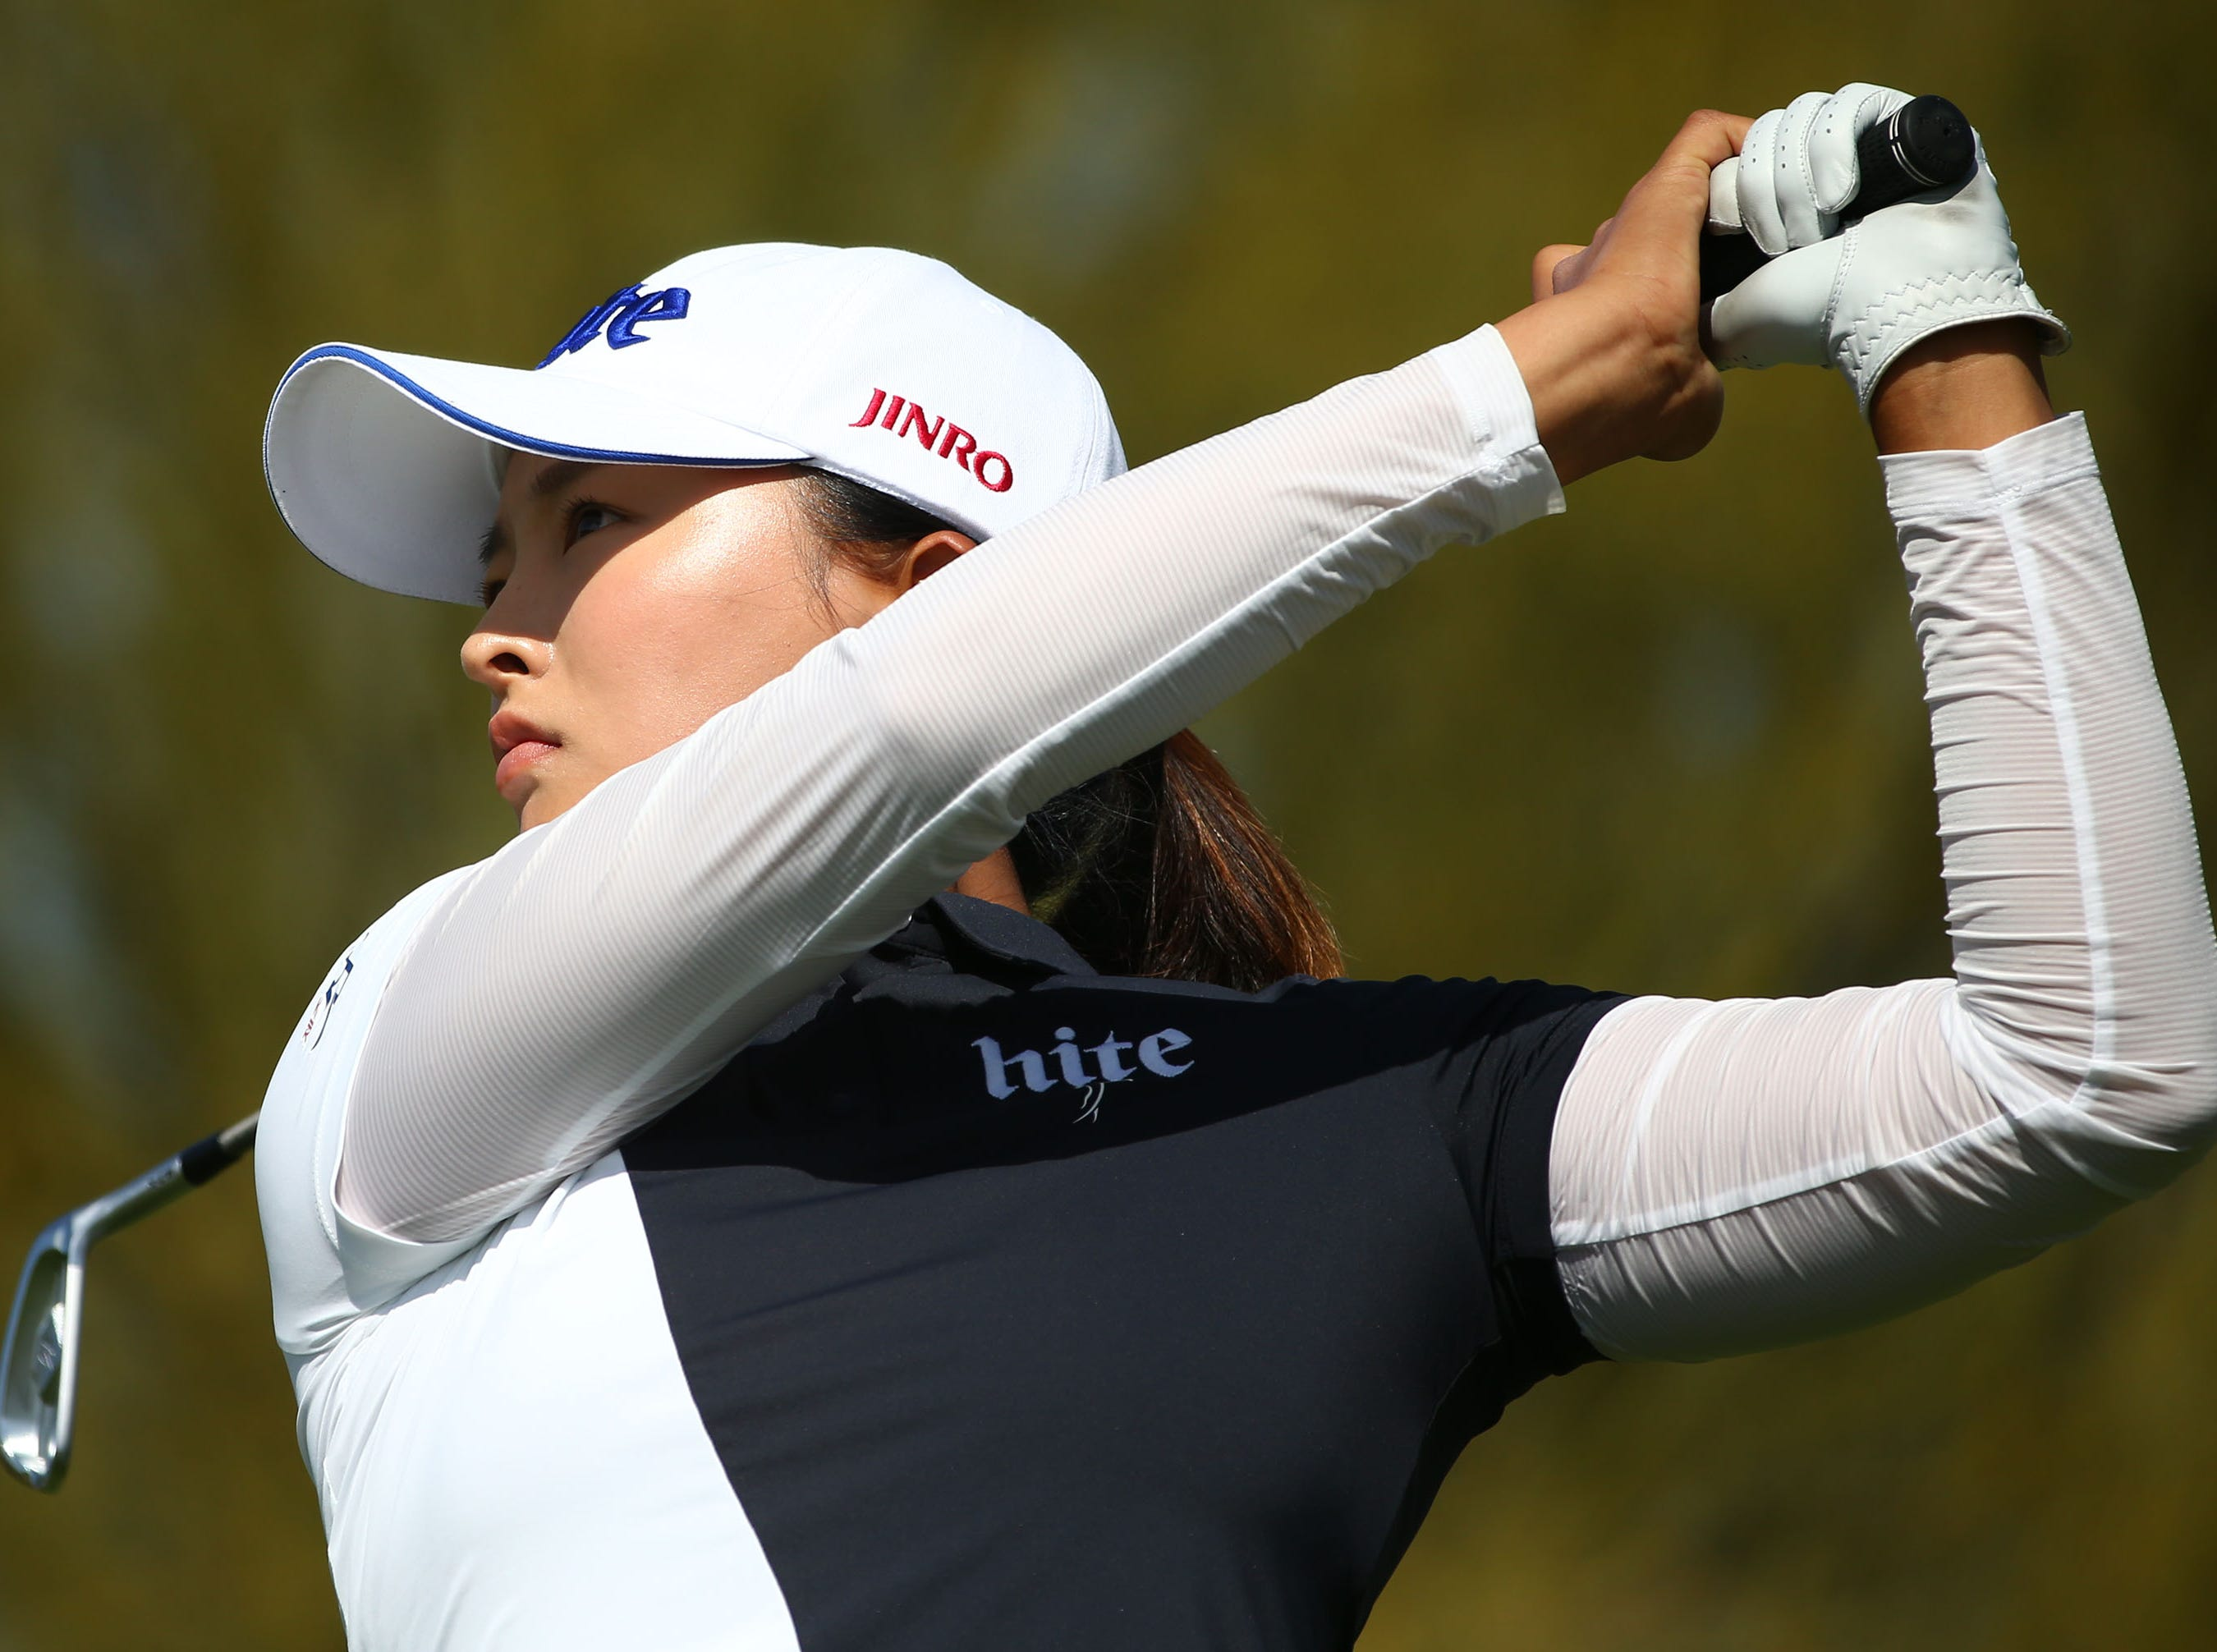 Jin Young Ko of South Korea hits her tee shot of the 4th hole during final round action at the Bank of Hope Founders Cup on Mar. 24, 2019 at Wildfire Golf Club at JW Marriott in Phoenix, Ariz.